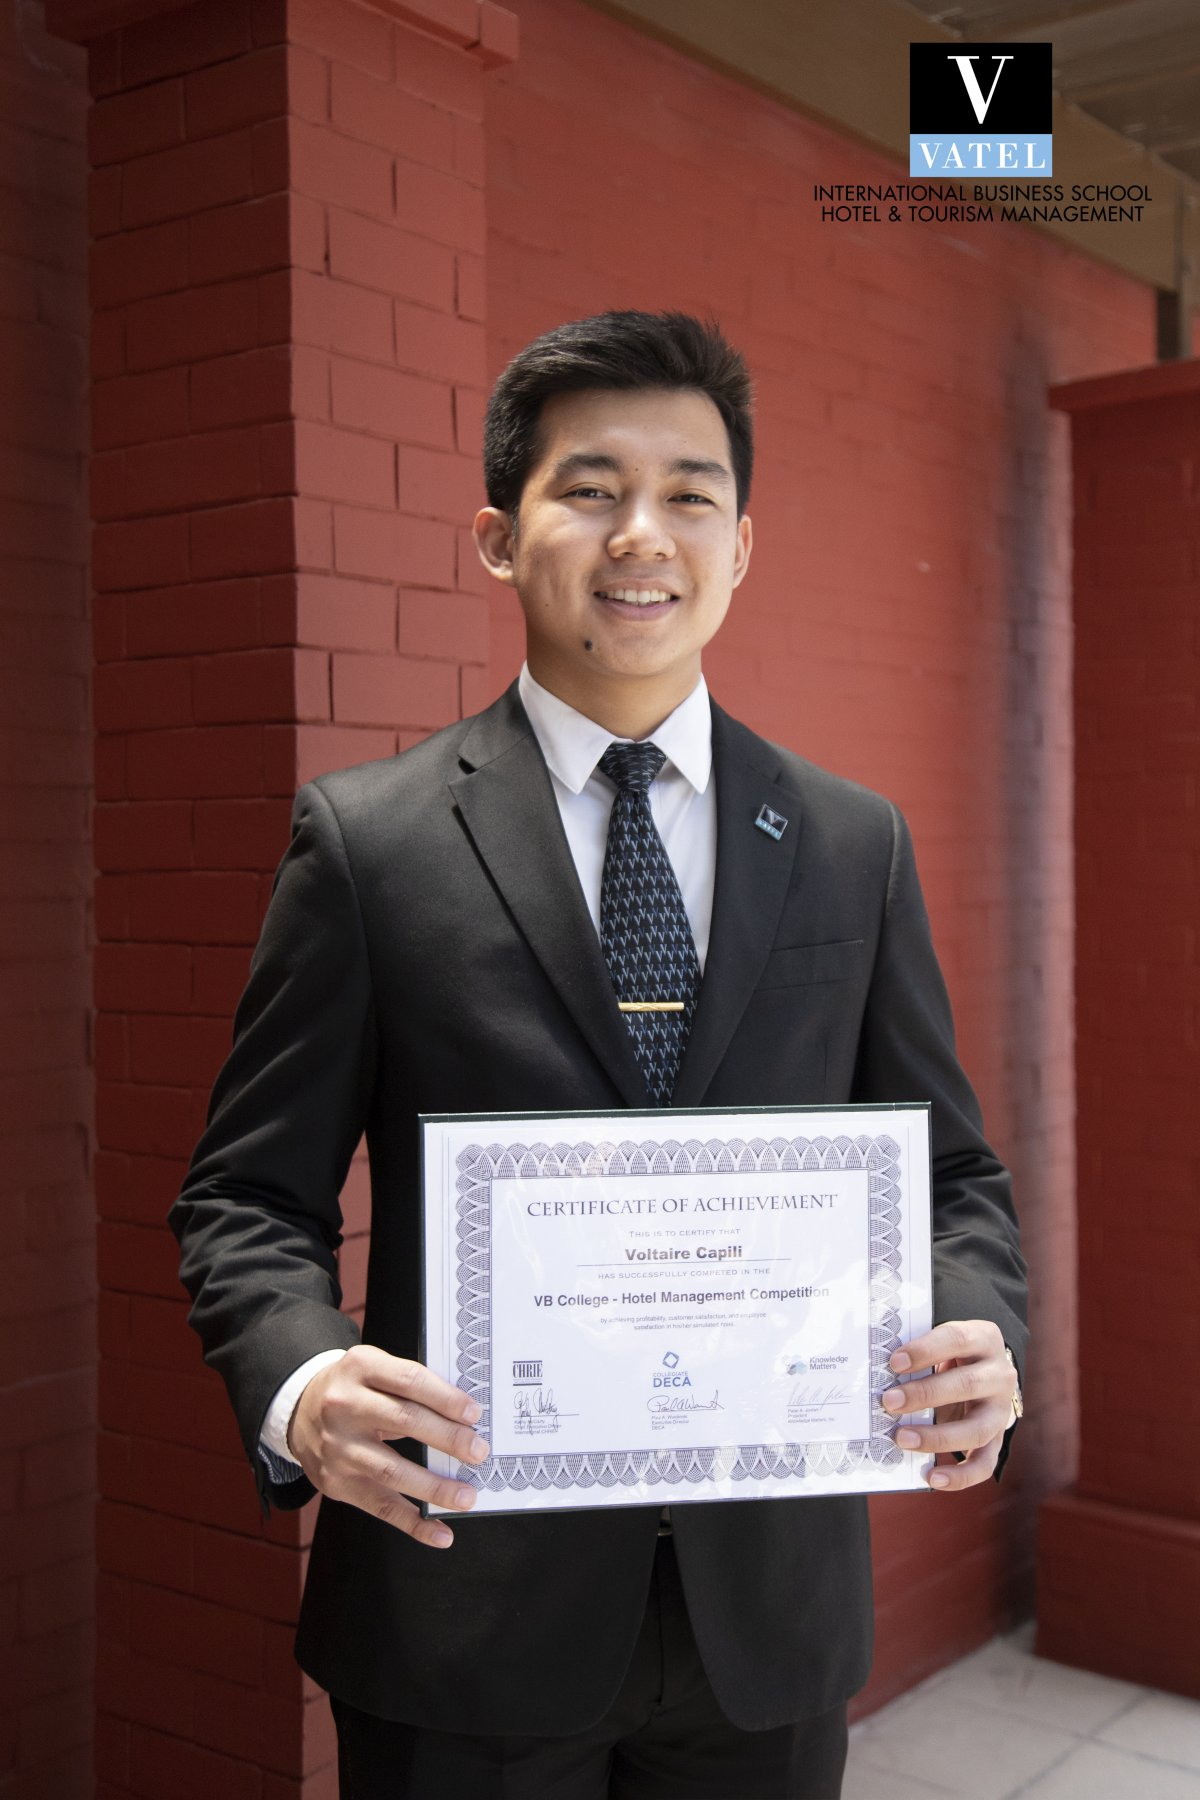 Vatel Manila student Voltaire Capili places fifth in international Hotel Management Competition